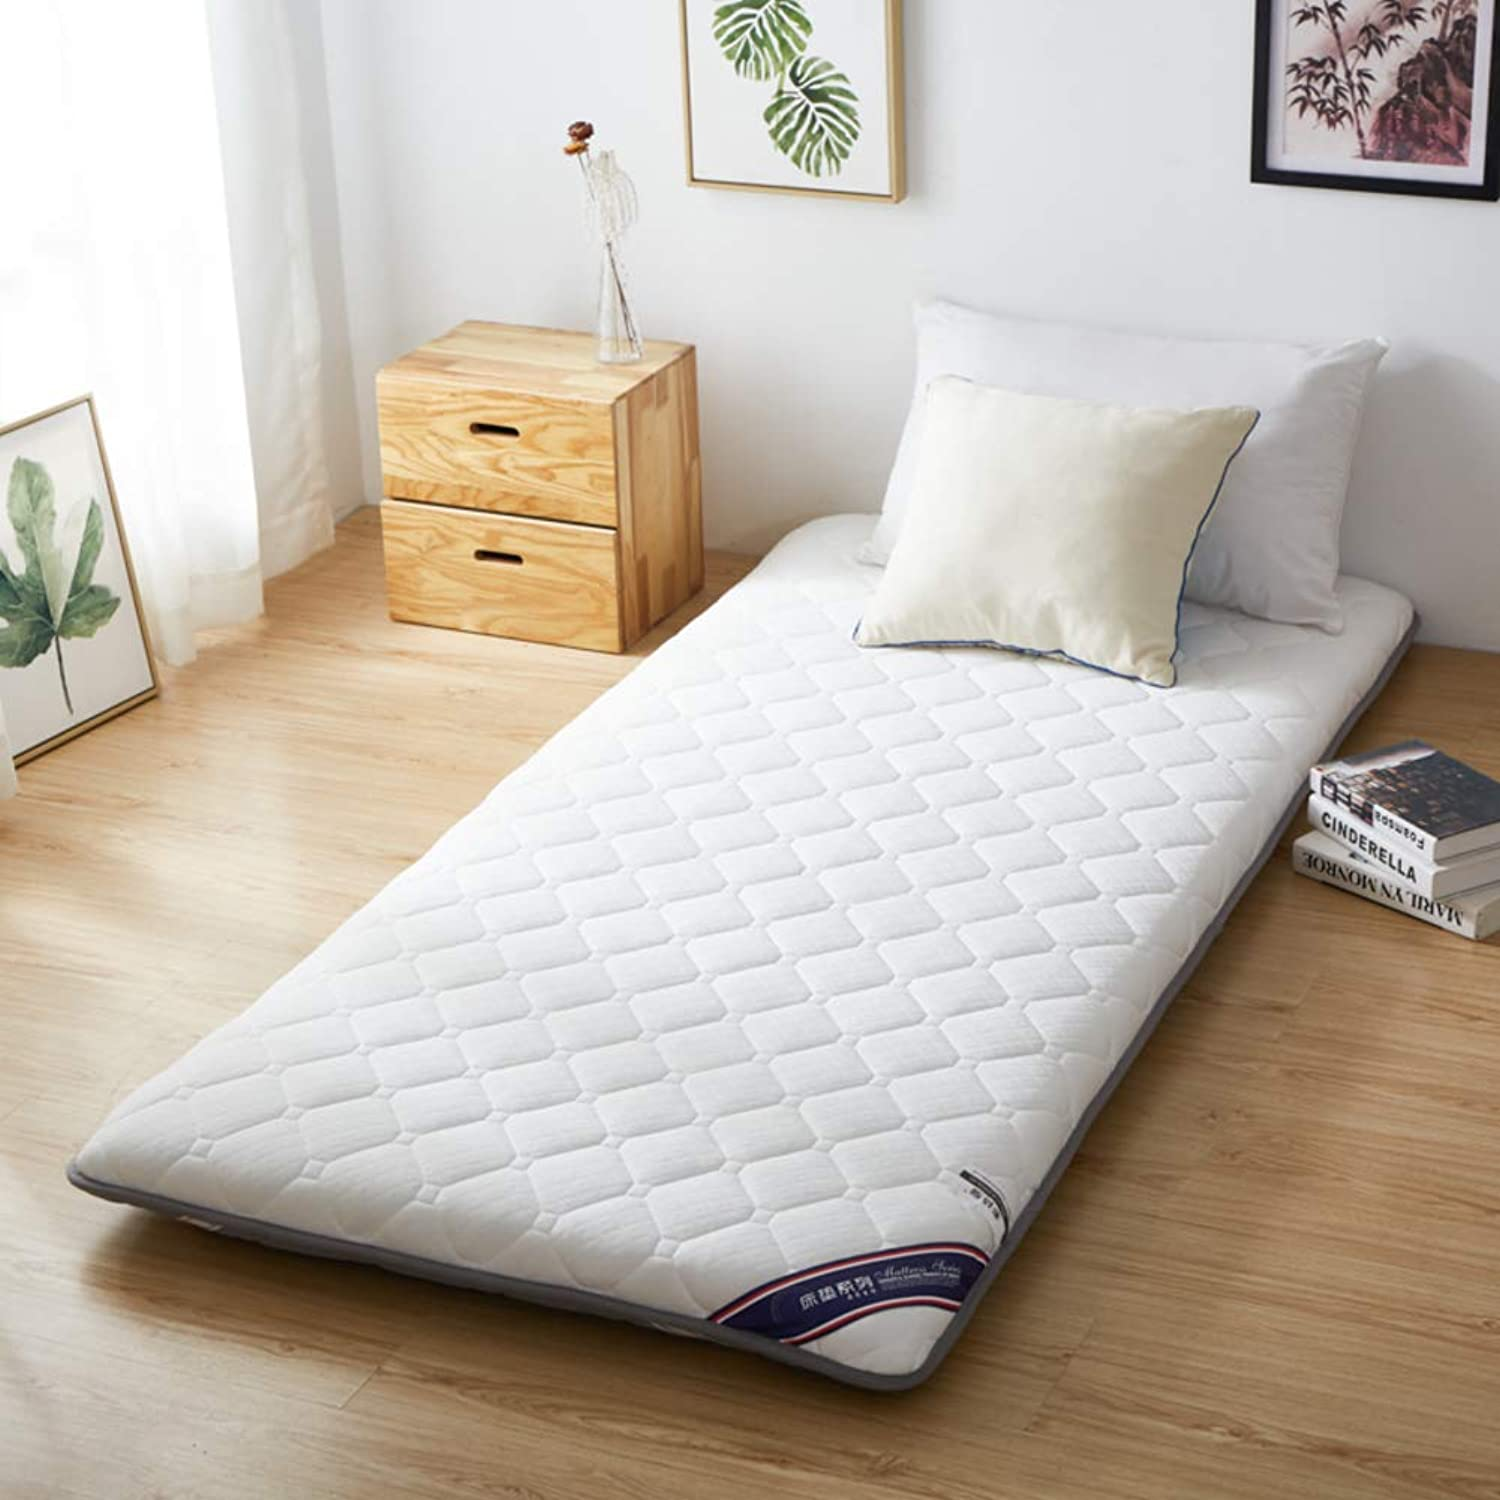 Breathable Bed Mattress Sleeping pad, Quilted Fitted Tatami Mattress Non-Slip Japanese Floor futon Mattress Foldable Roll up Mattress Easy to Carry for Student Dormitory -A 100x190cm(39x75inch)